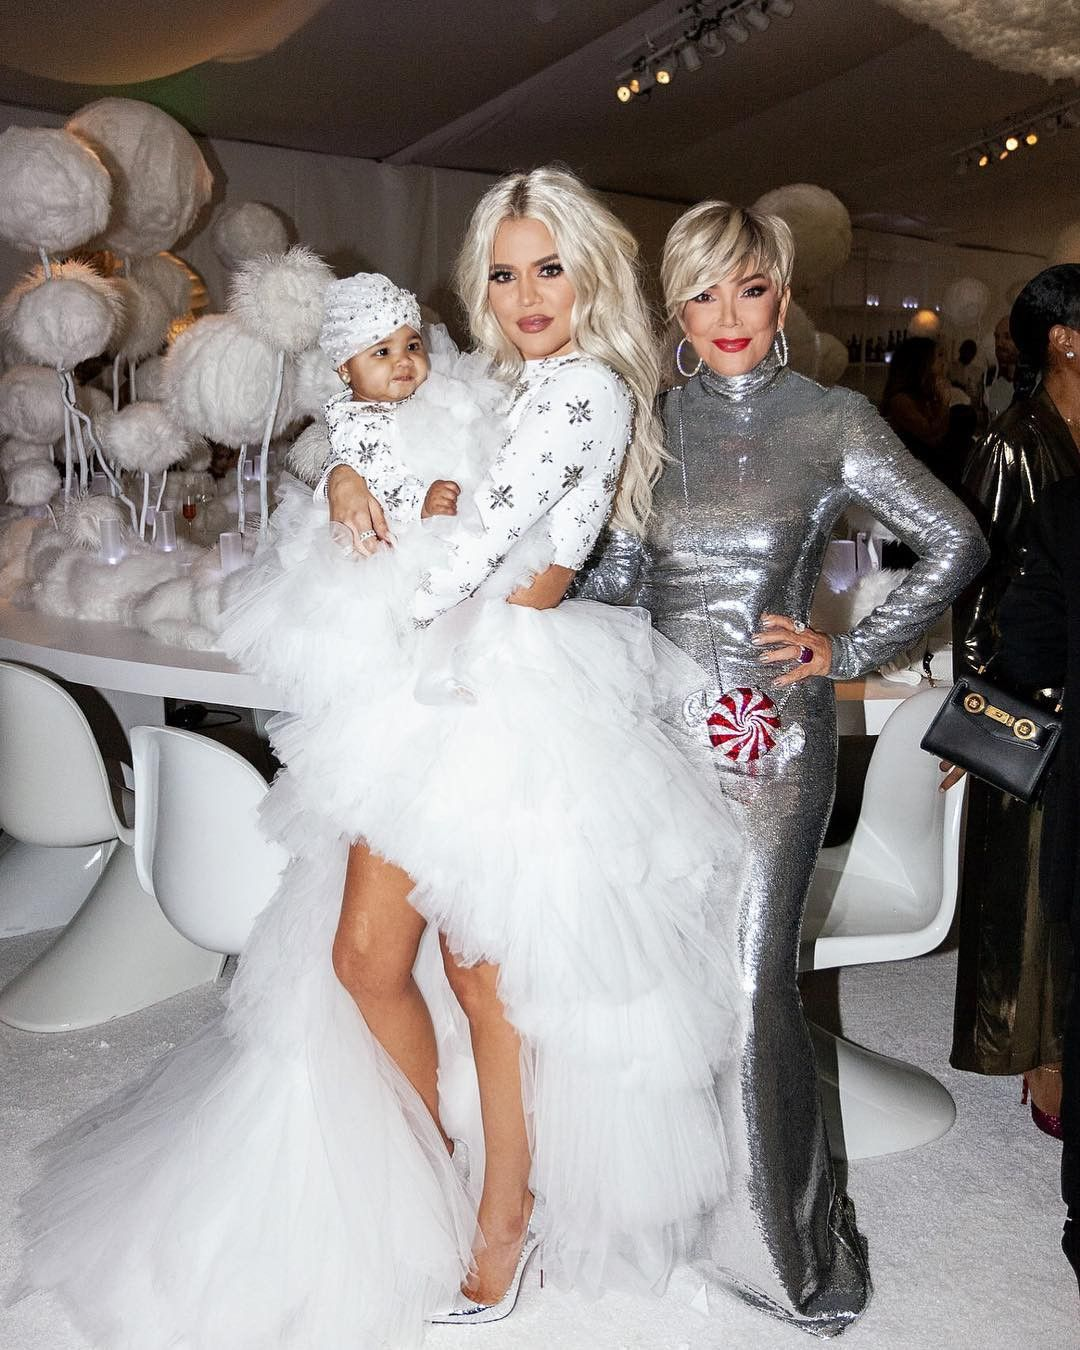 Khloe Kardashian Fansite b25ab7941750a1e7d436874a27aa5acd Khloe Kardashian says family definitely celebrating Christmas with 'smaller' party